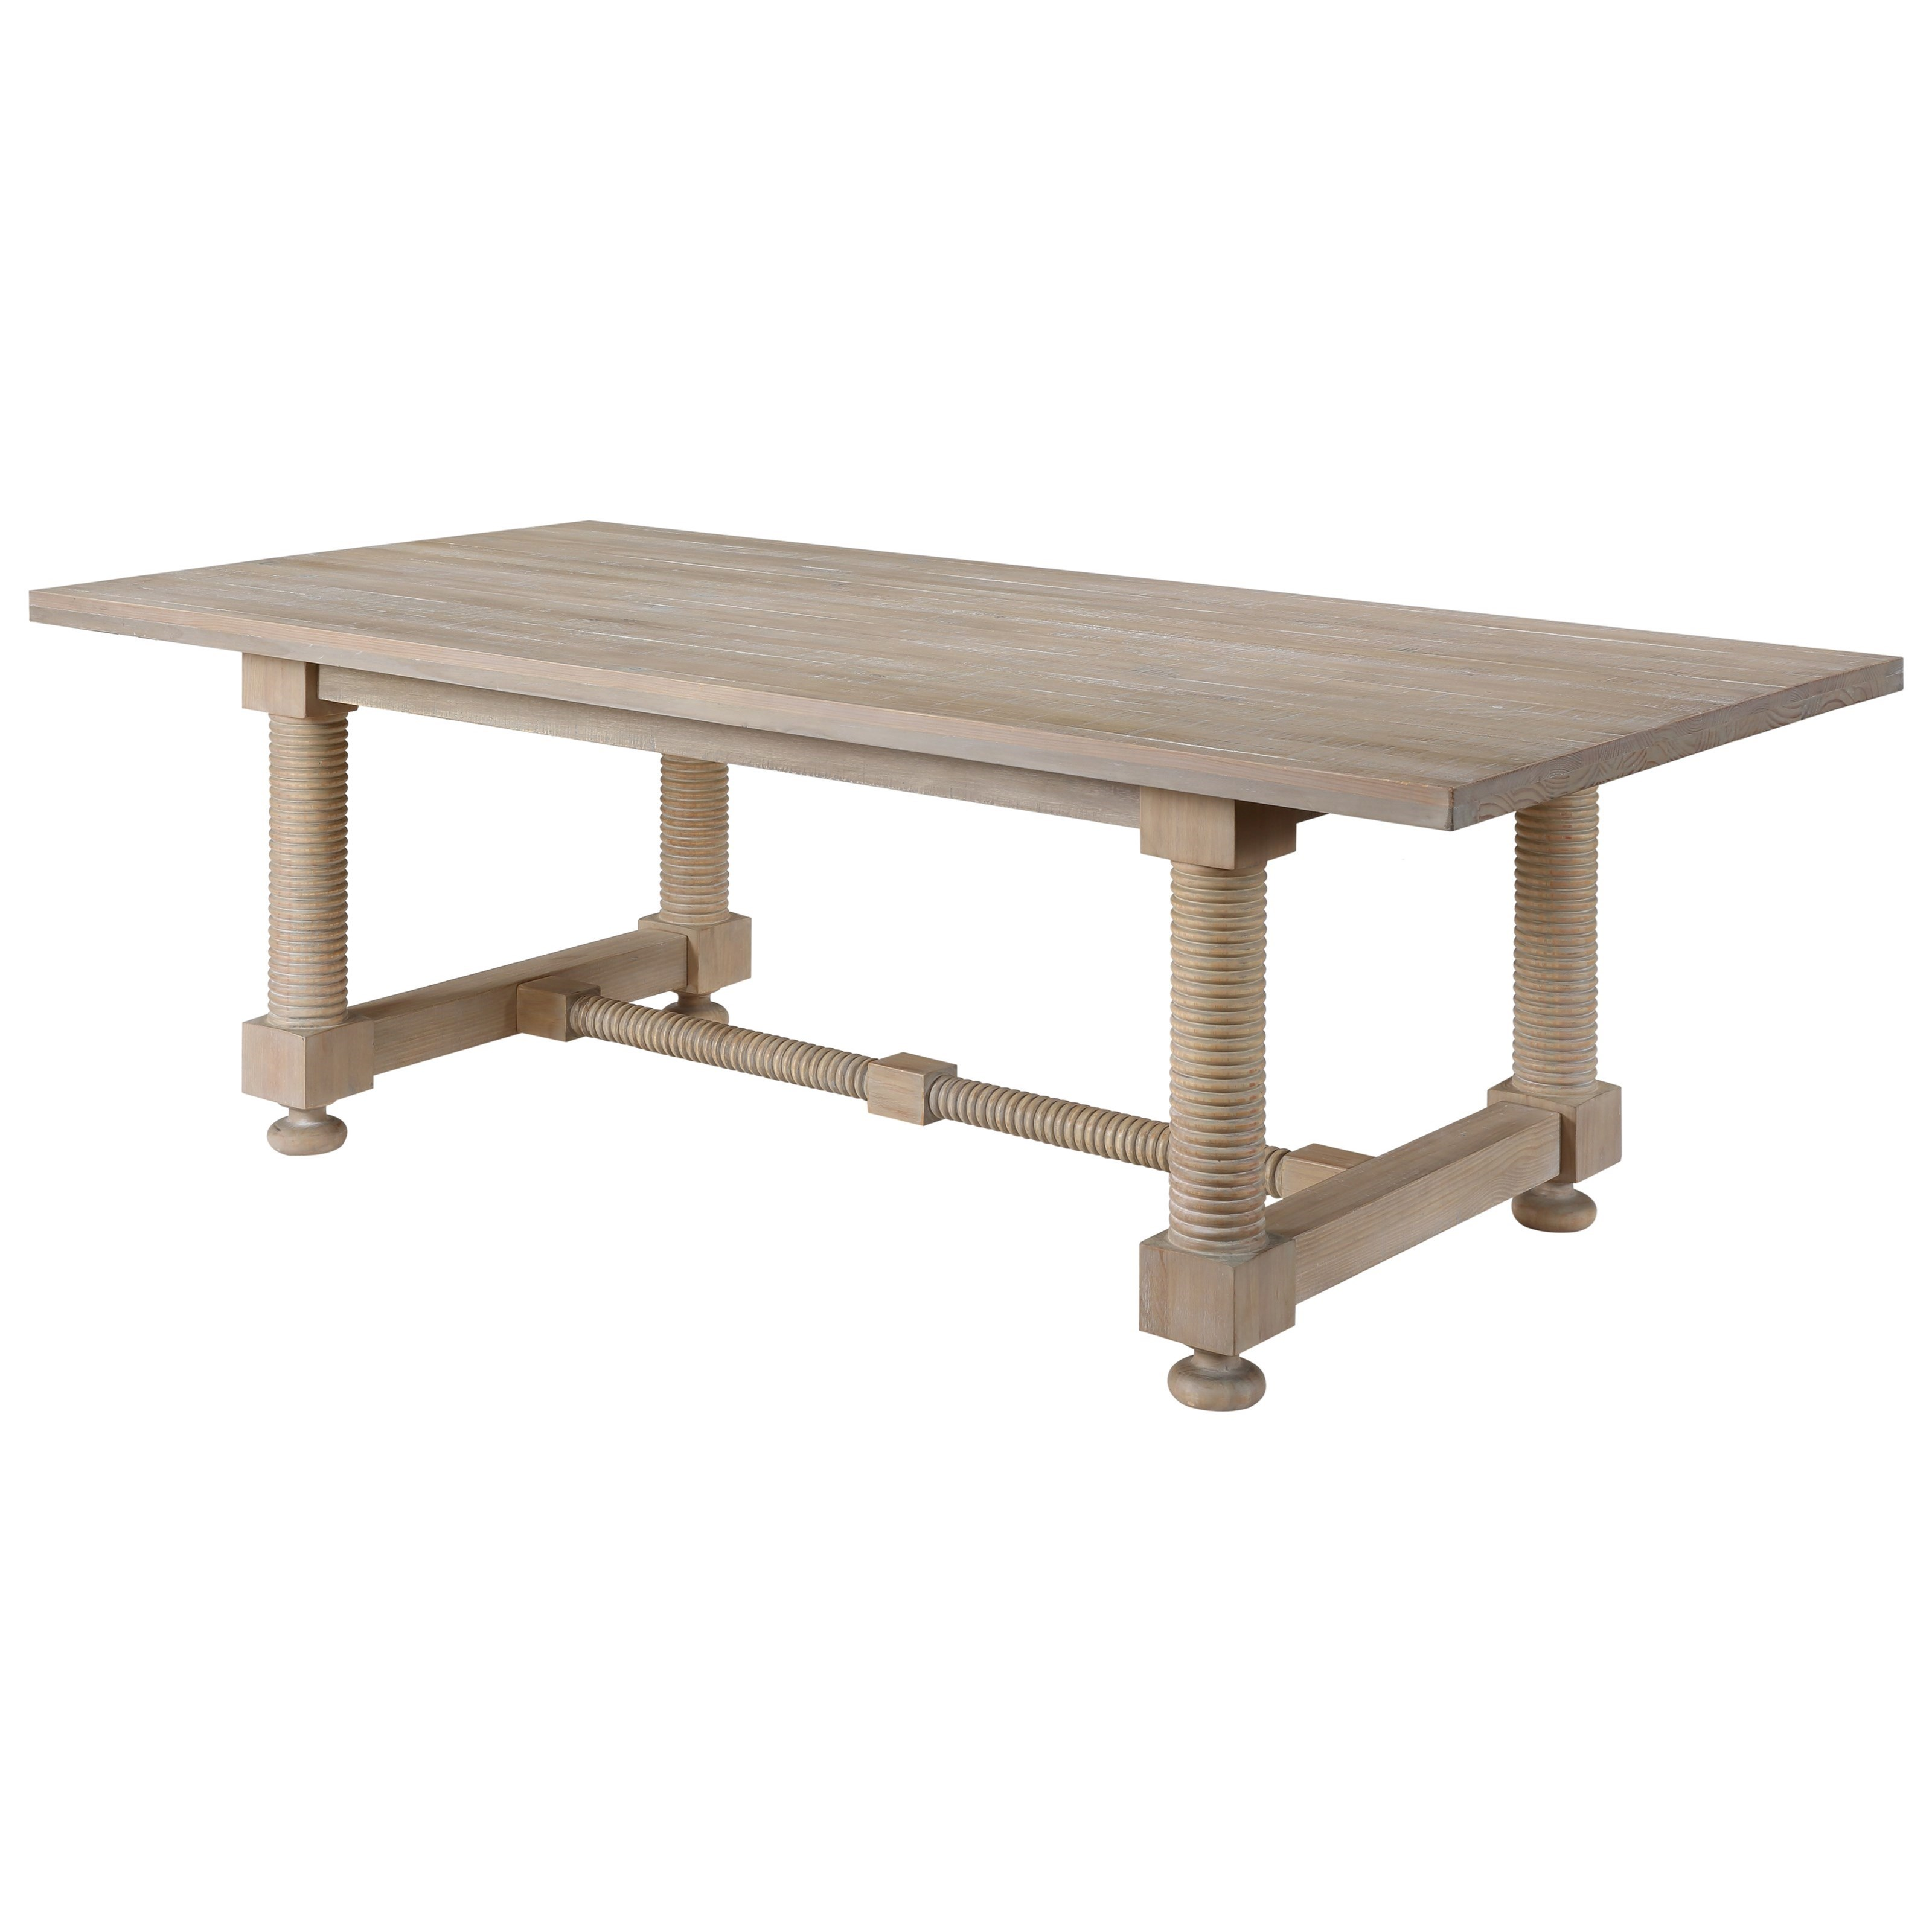 Barrister Rectangular Dining Table by C2C at Walker's Furniture